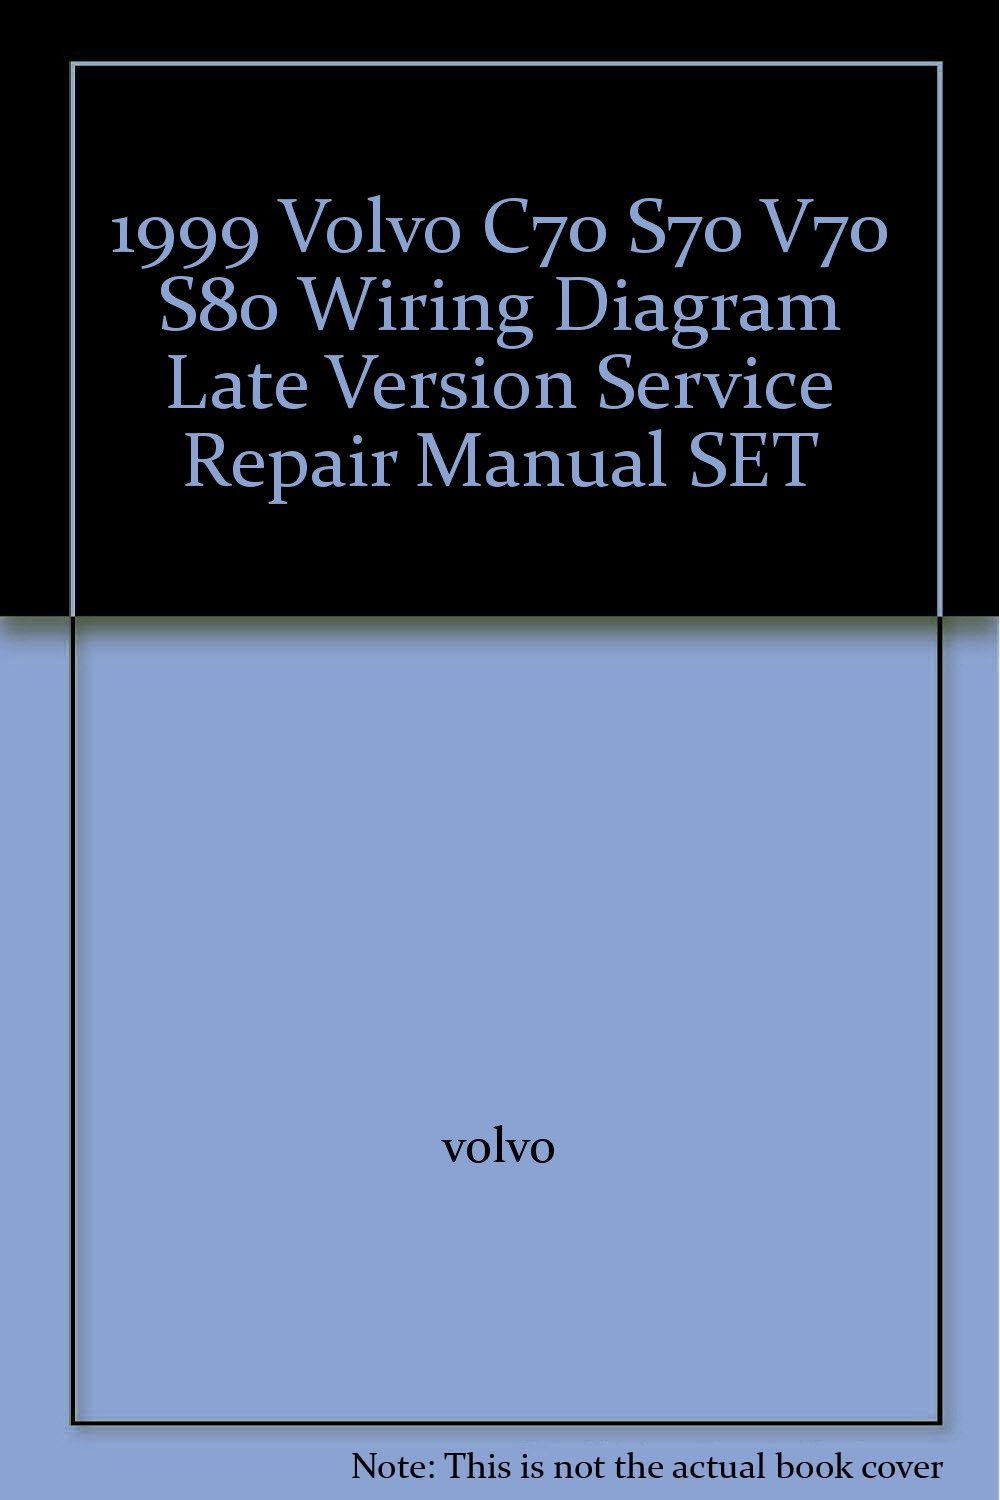 Volvo V70 Wiring Diagram 2004 Volvo V70 Headlight Wiring Diagram